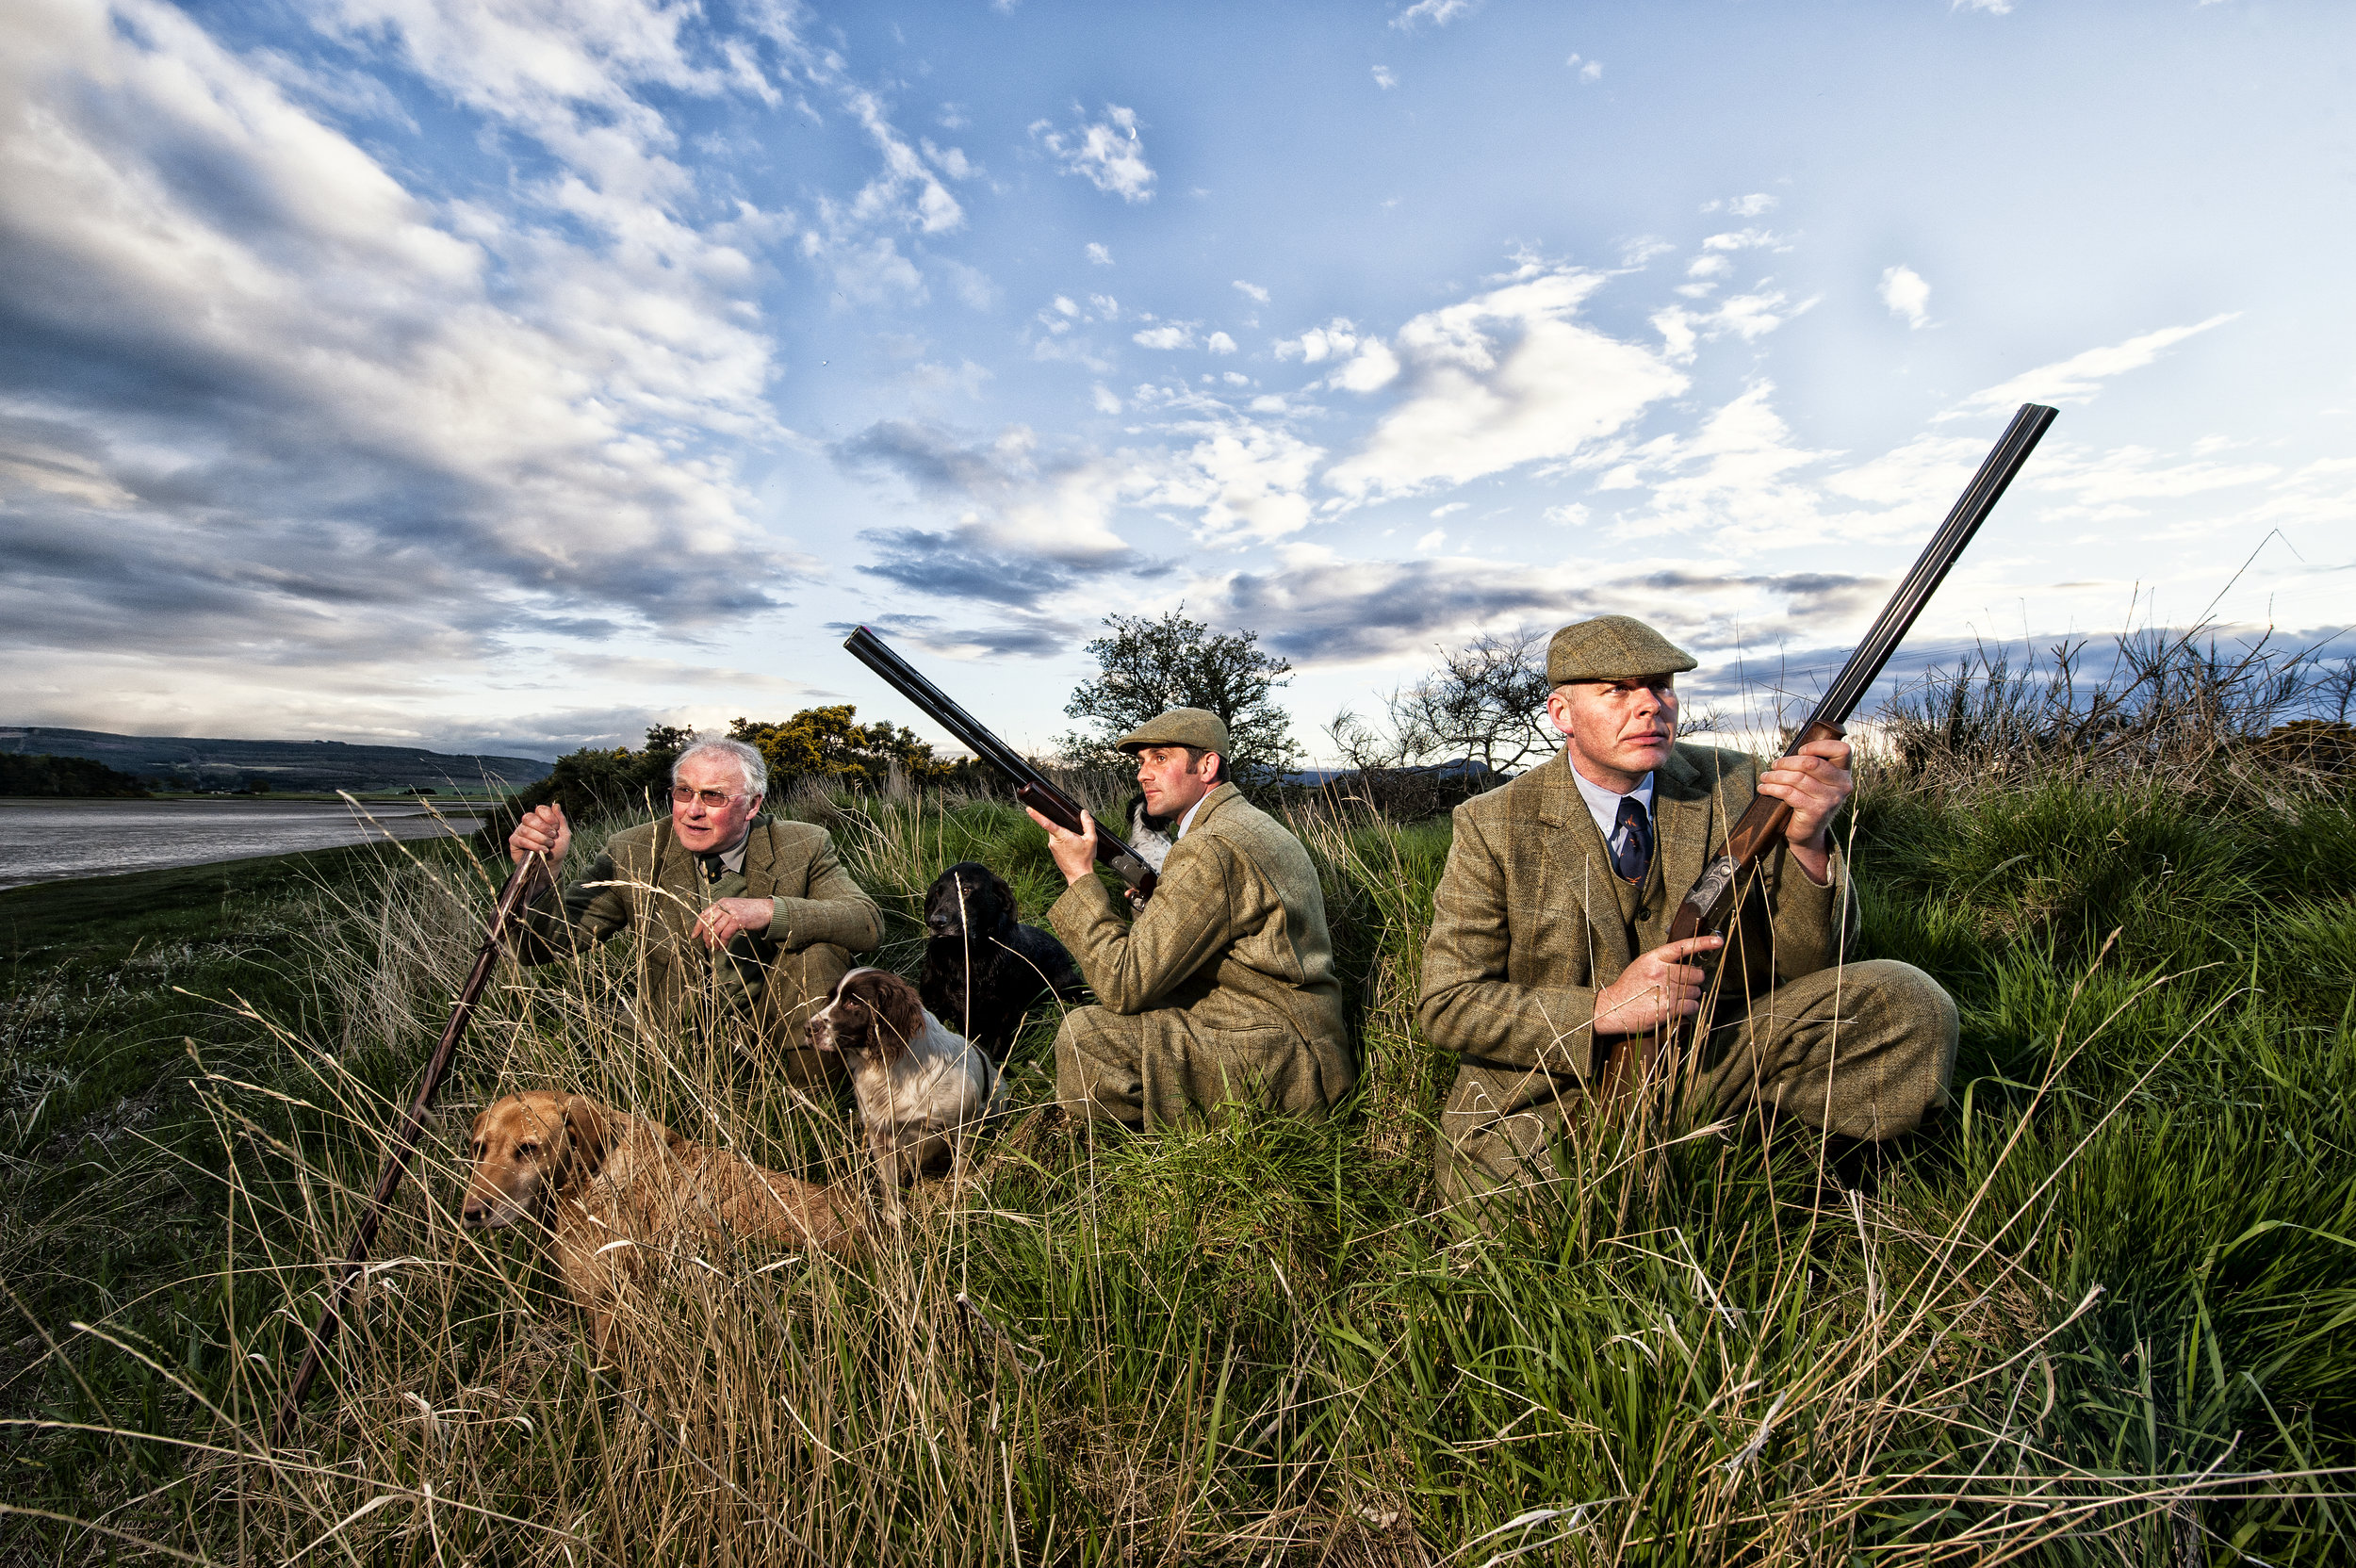 Hunting grounds Skibo Castle Scotland for LXRY-magazine